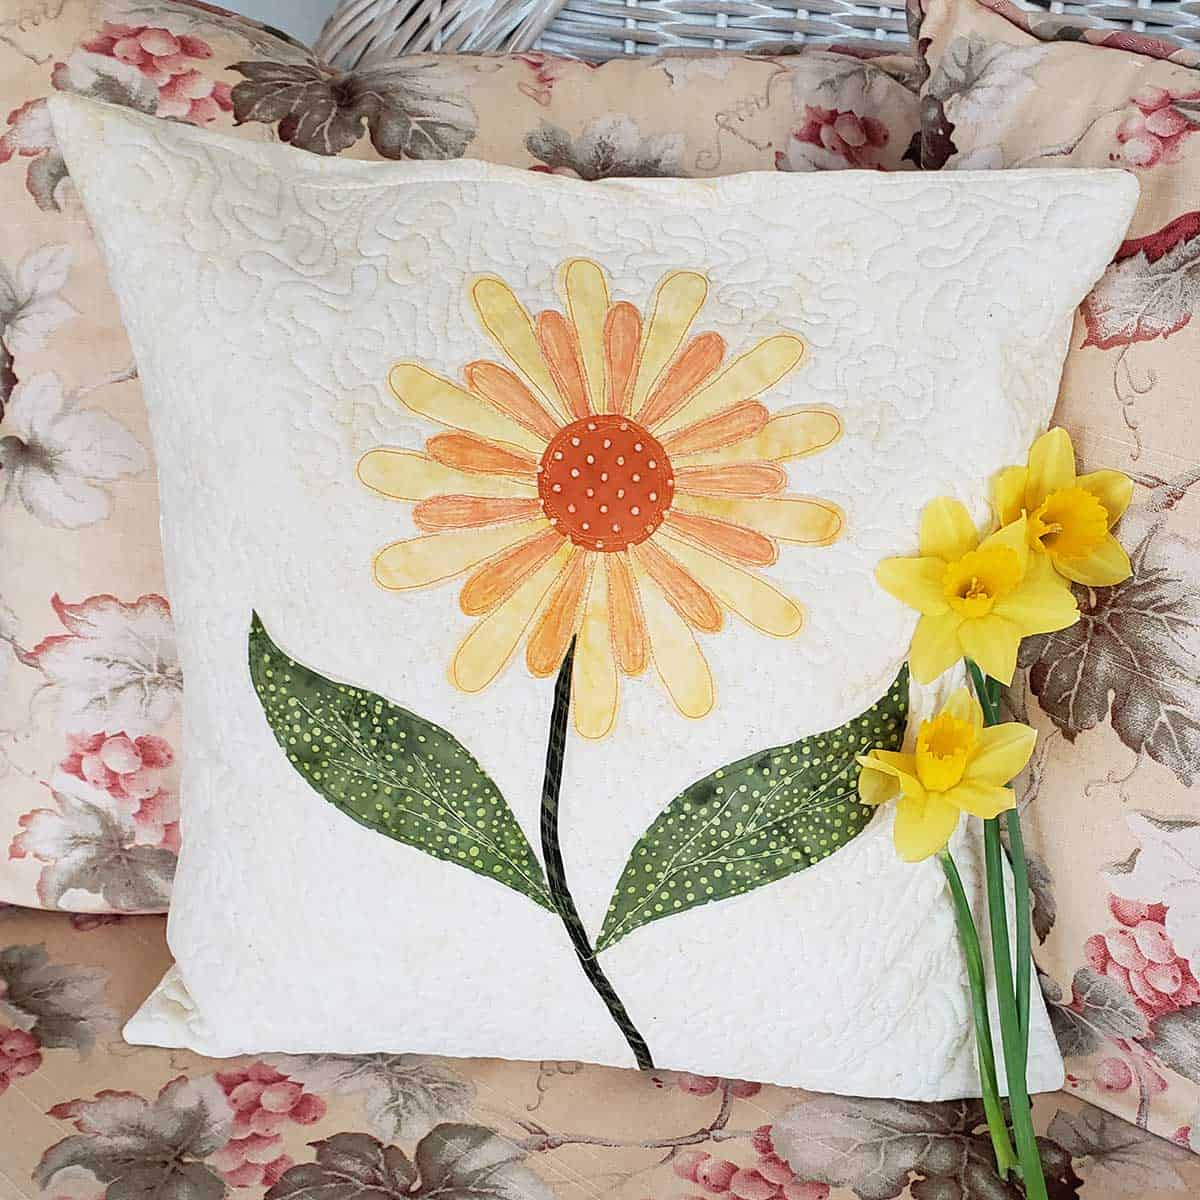 Daisy pillow and daffodils